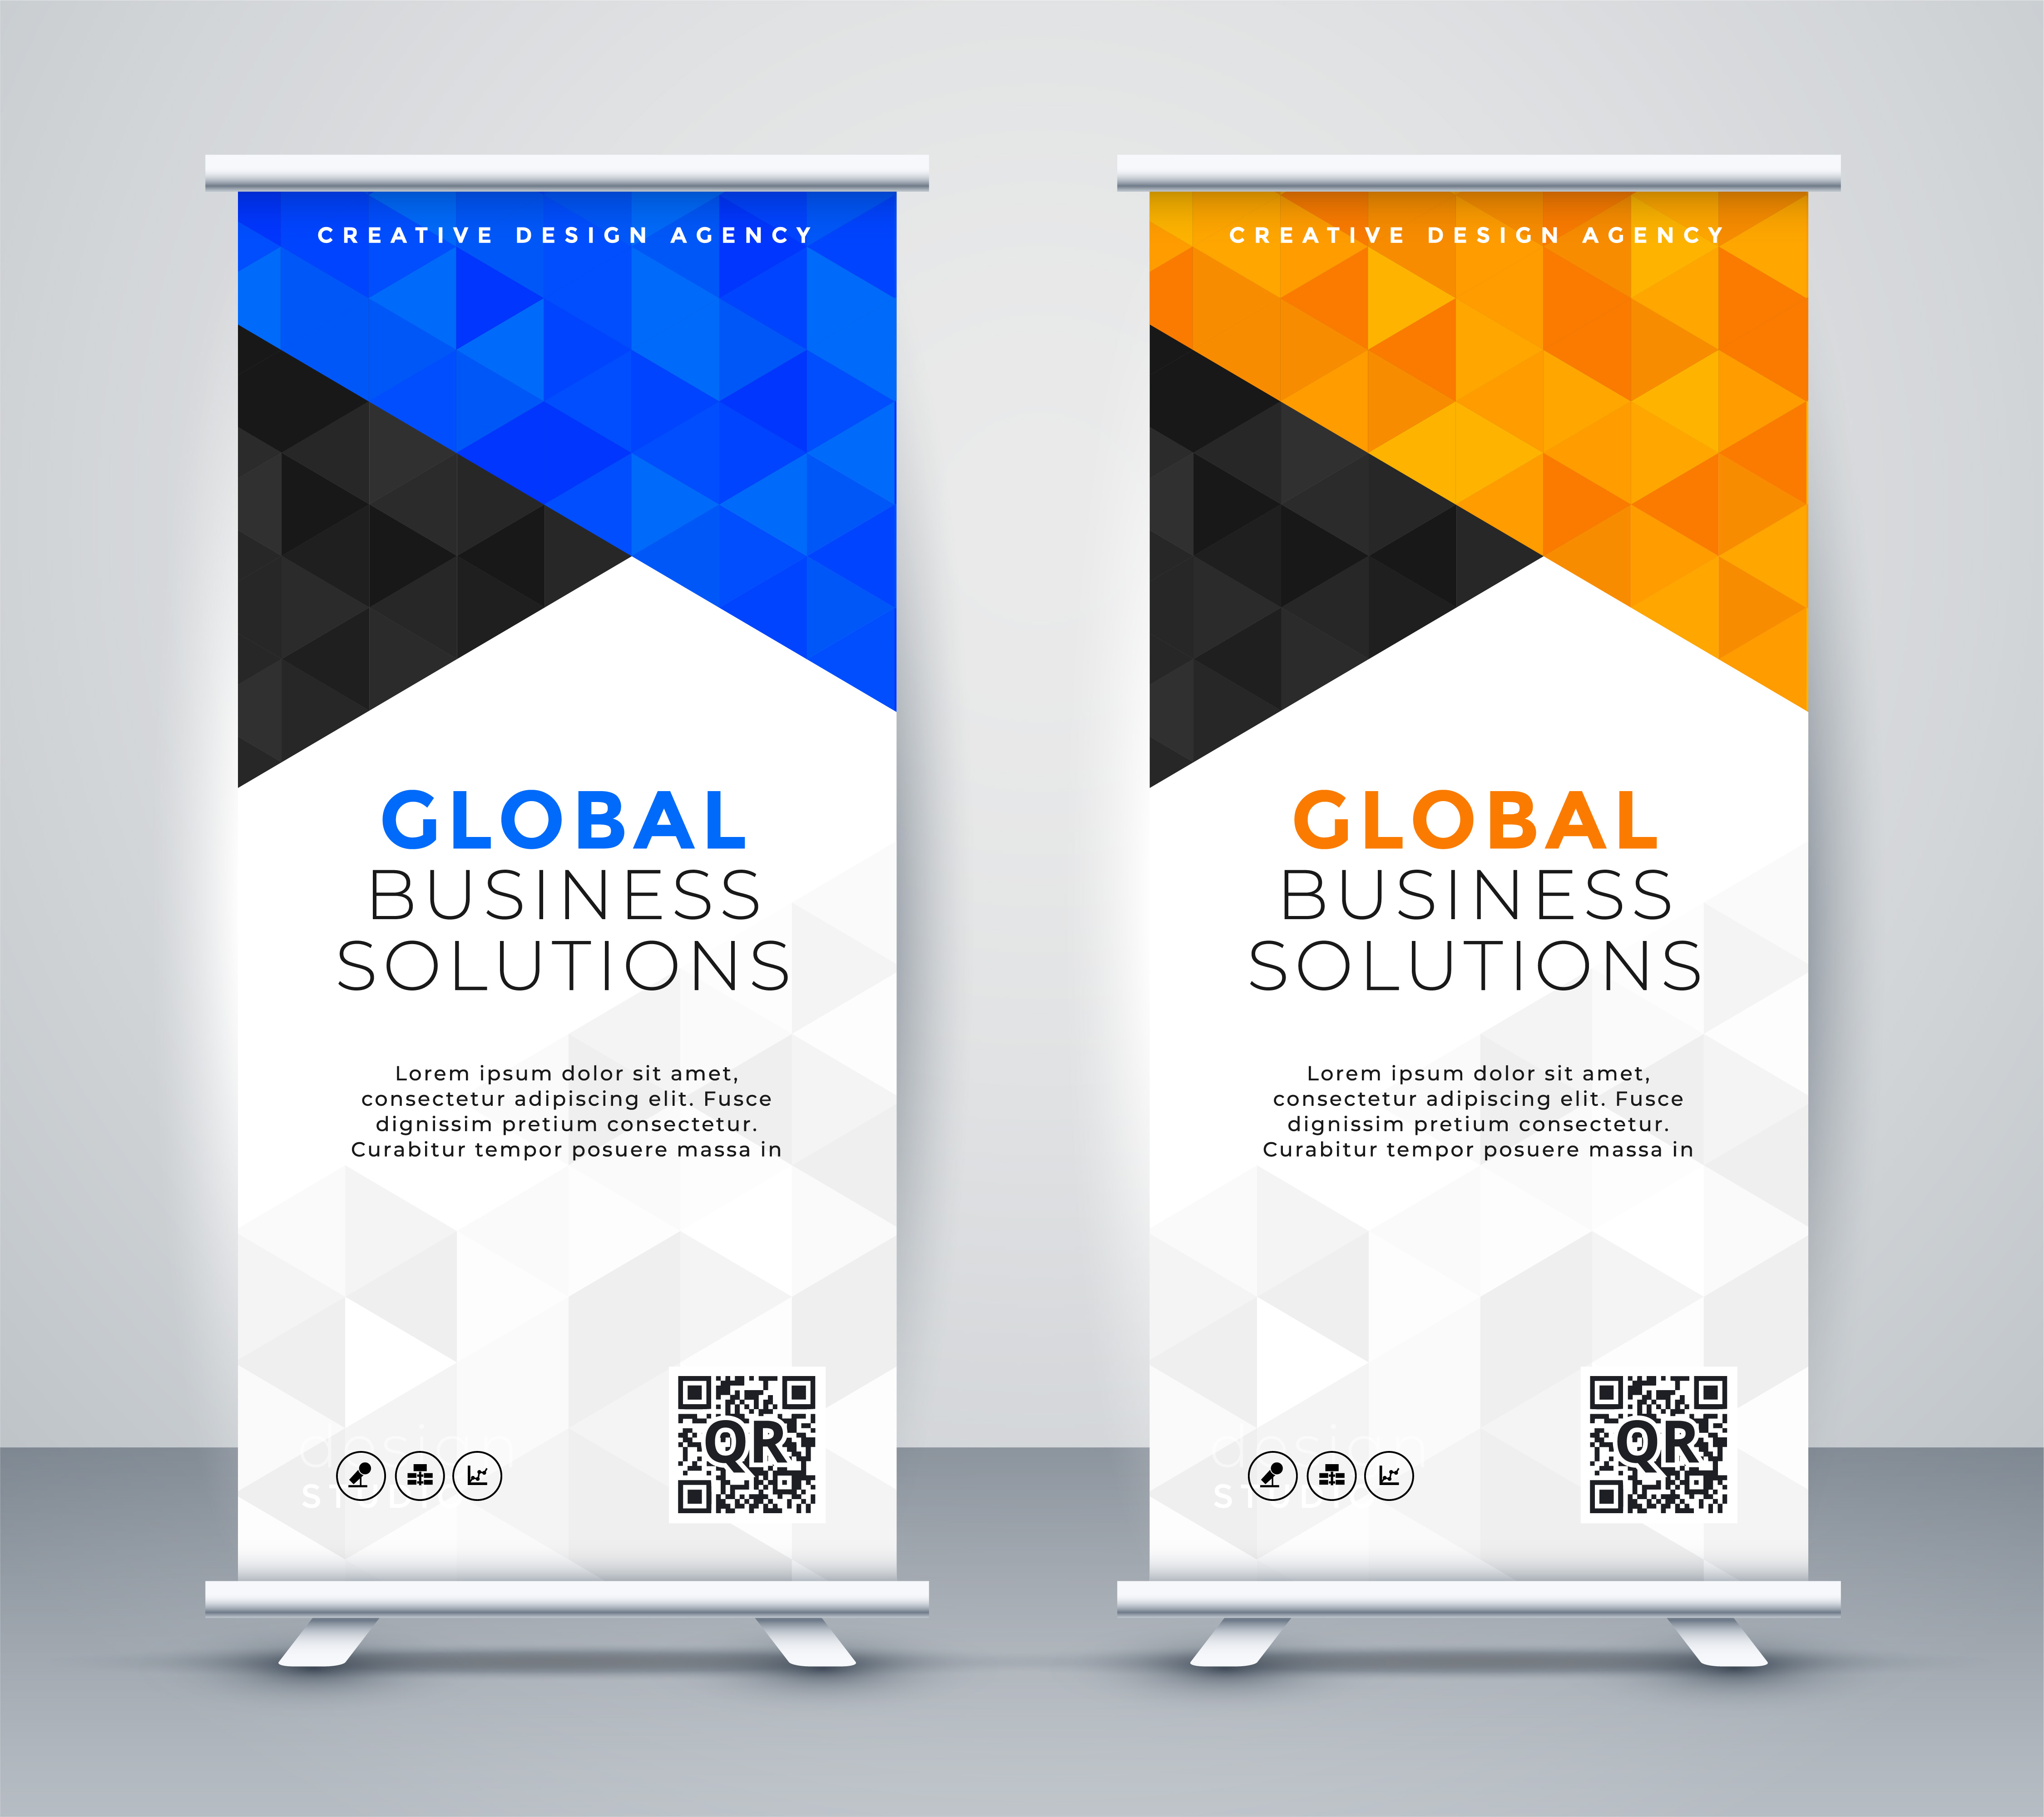 Rollup Modern Rollup Standee Banner Template Download Free Vector Art